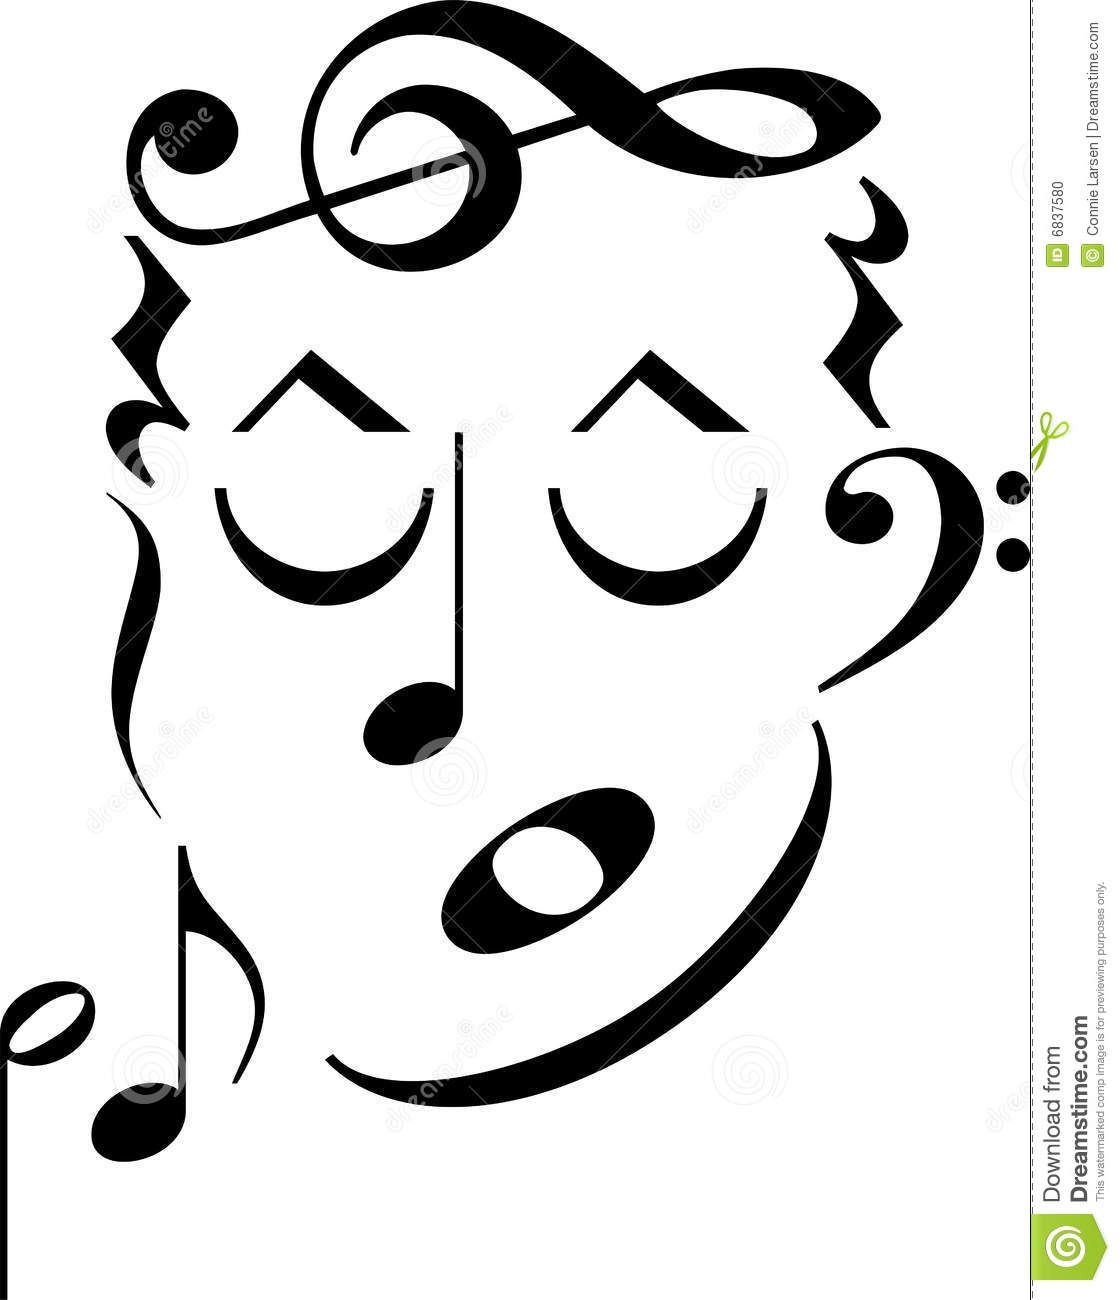 Music Symbols Clip Art Cartoon Mans Face Made Up Of Musical Notes